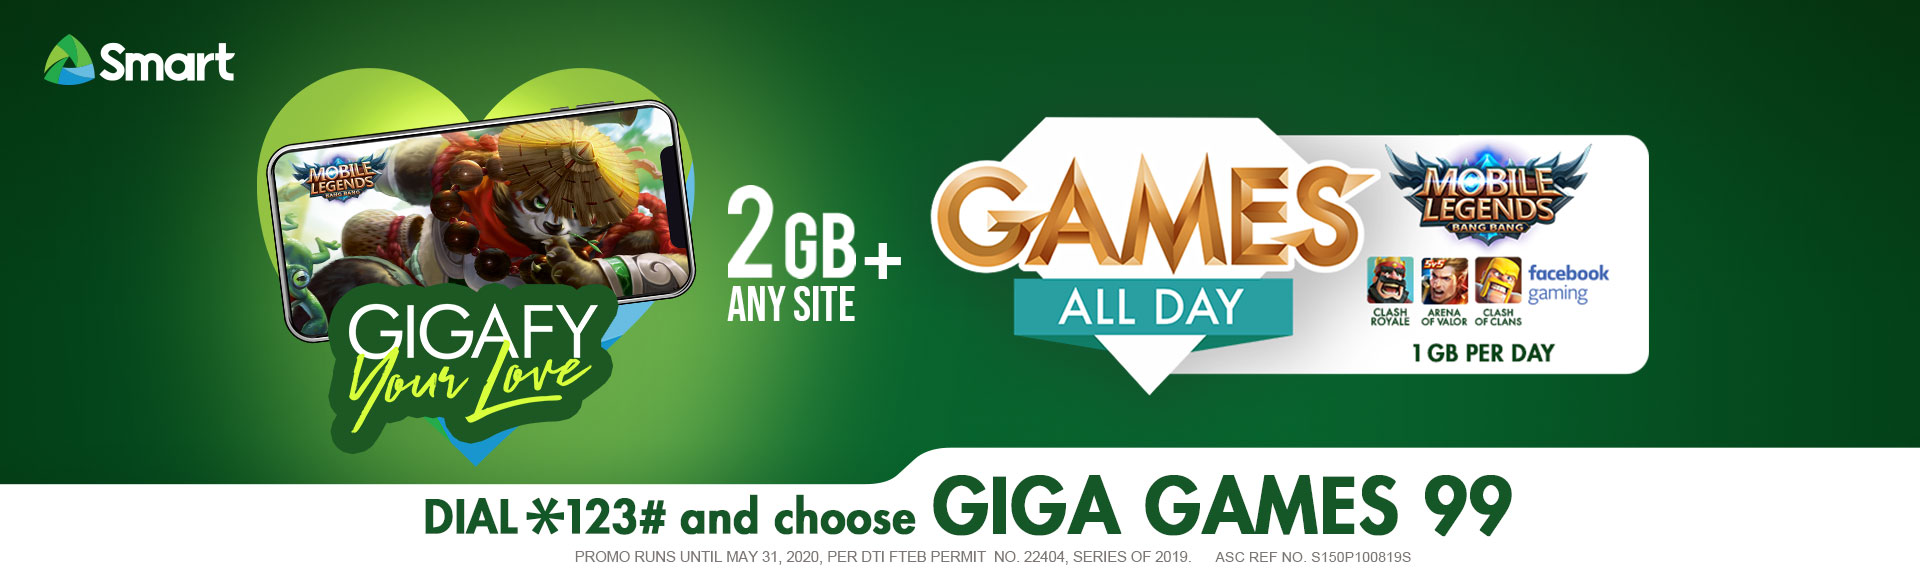 Giga-Games-149-web-banner-1920-x-575px